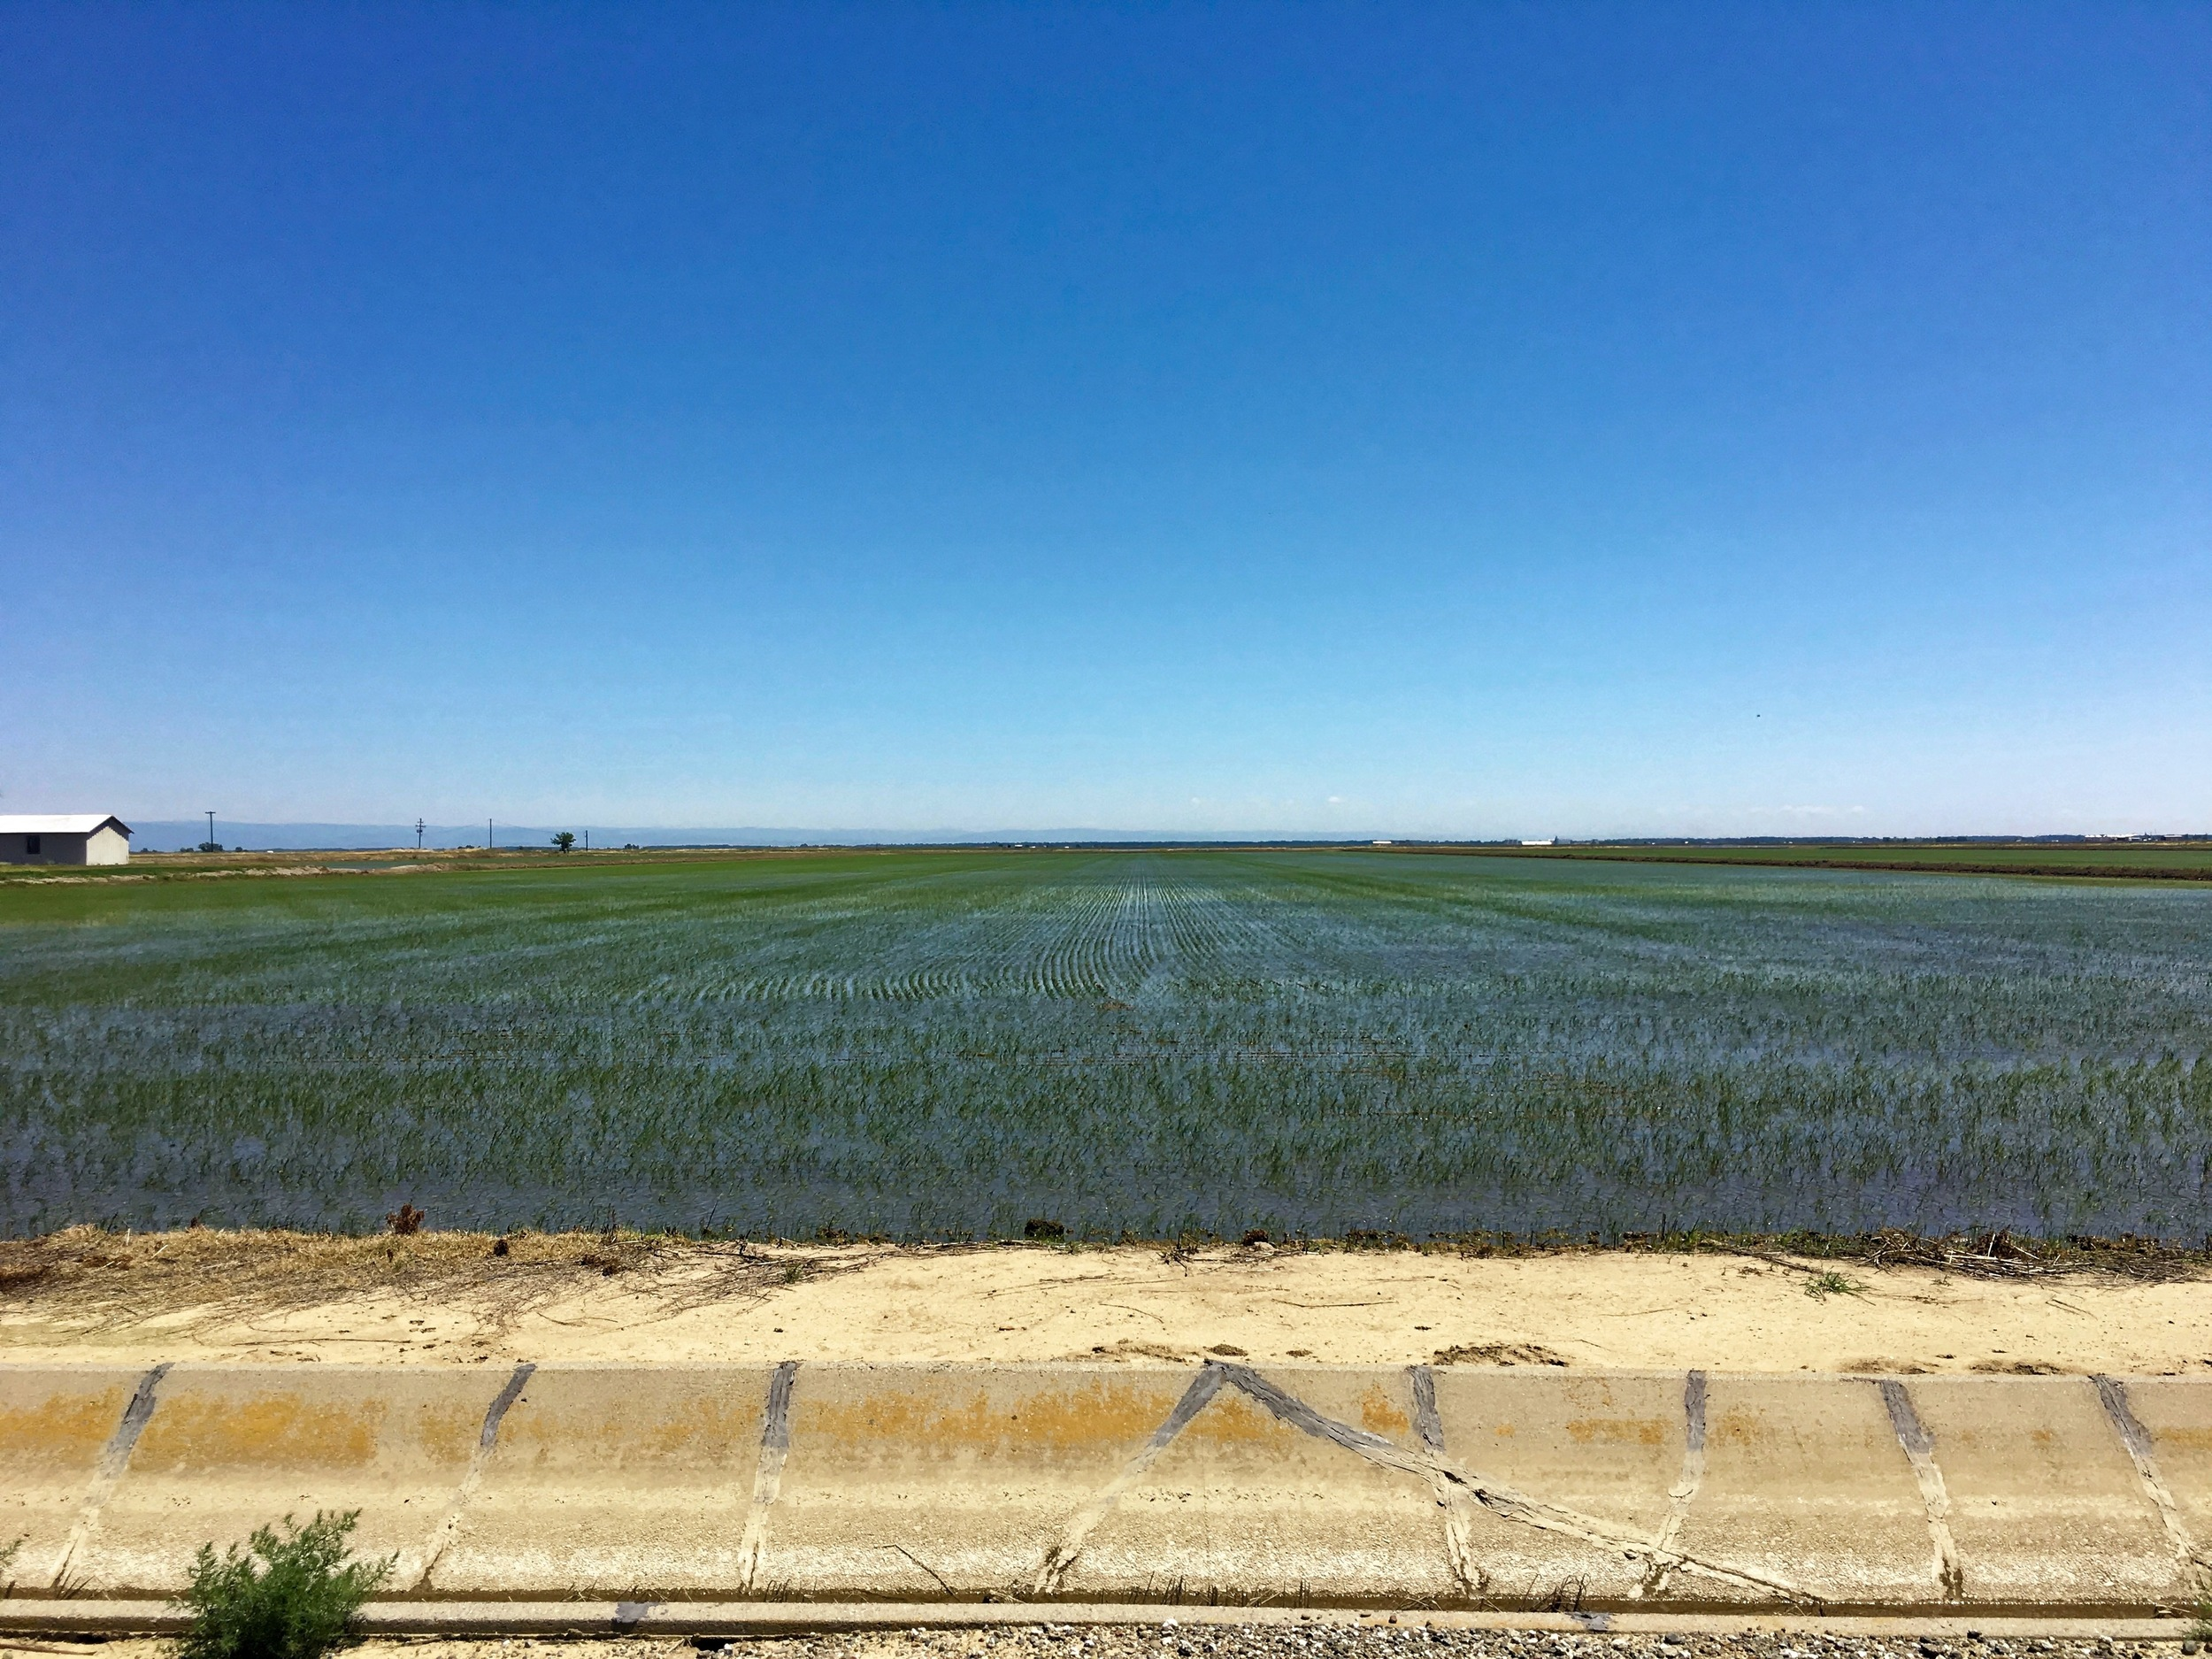 One of many rice farms east of Chico in the Sacramento Valley. A great deal of water is diverted to the delta...